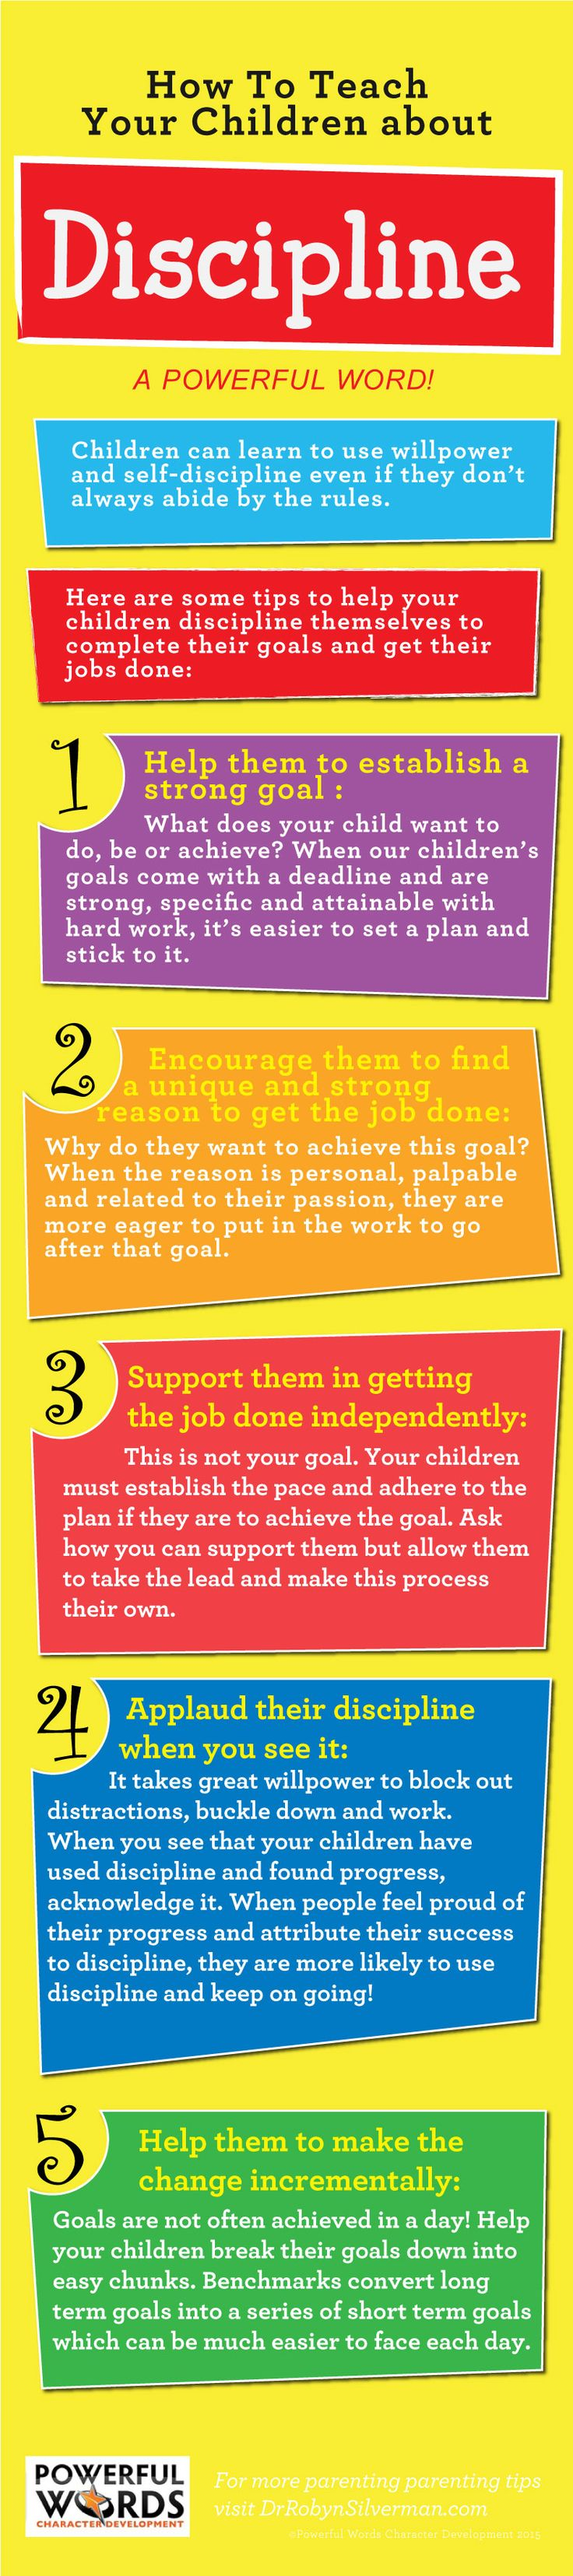 Discipline | Infographic | Parenting | Powerful Words for Child Development http://www.kidsmartialartcenters.com/school/index.php?location=lithia-fl&utm_content=buffer641ec&utm_medium=social&utm_source=pinterest.com&utm_campaign=buffer